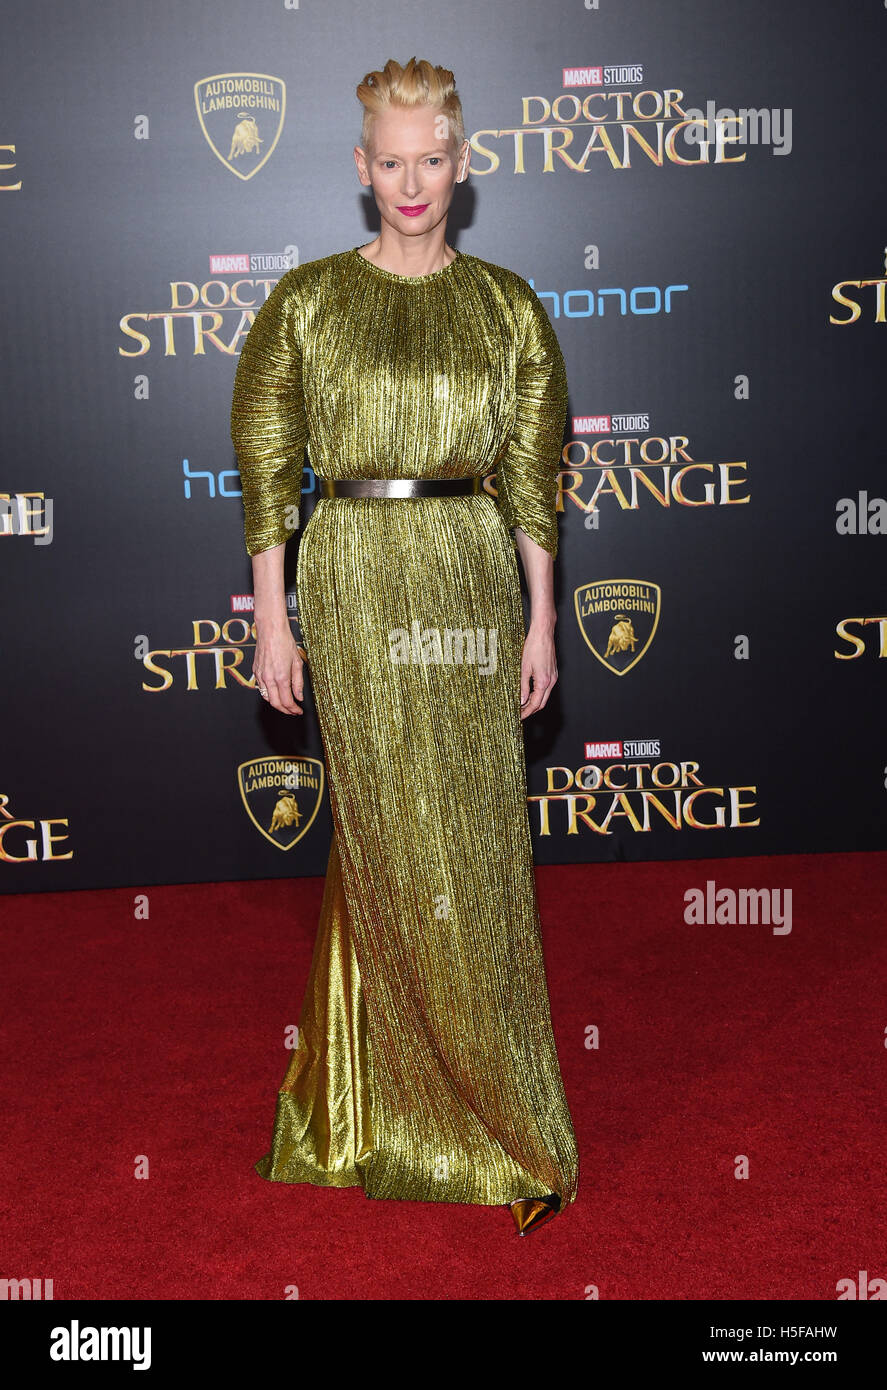 "Hollywood, Kalifornien, USA. 20. Oktober 2016. Tilda Swinton kommt für die Premiere des Films ""Doctor Stockbild"